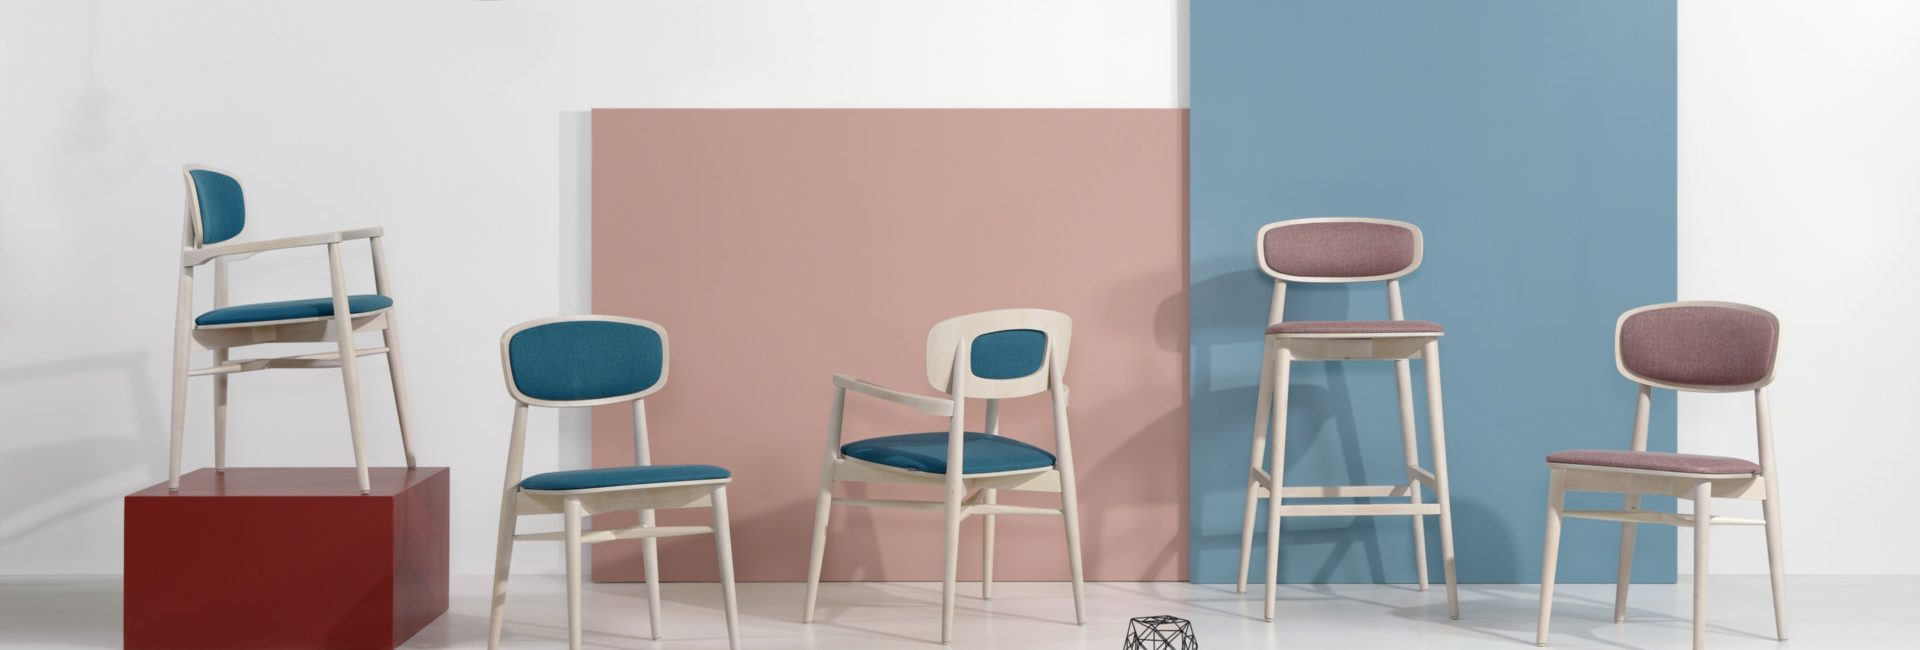 Hospitality Dining Dona Side Chair, in setting image